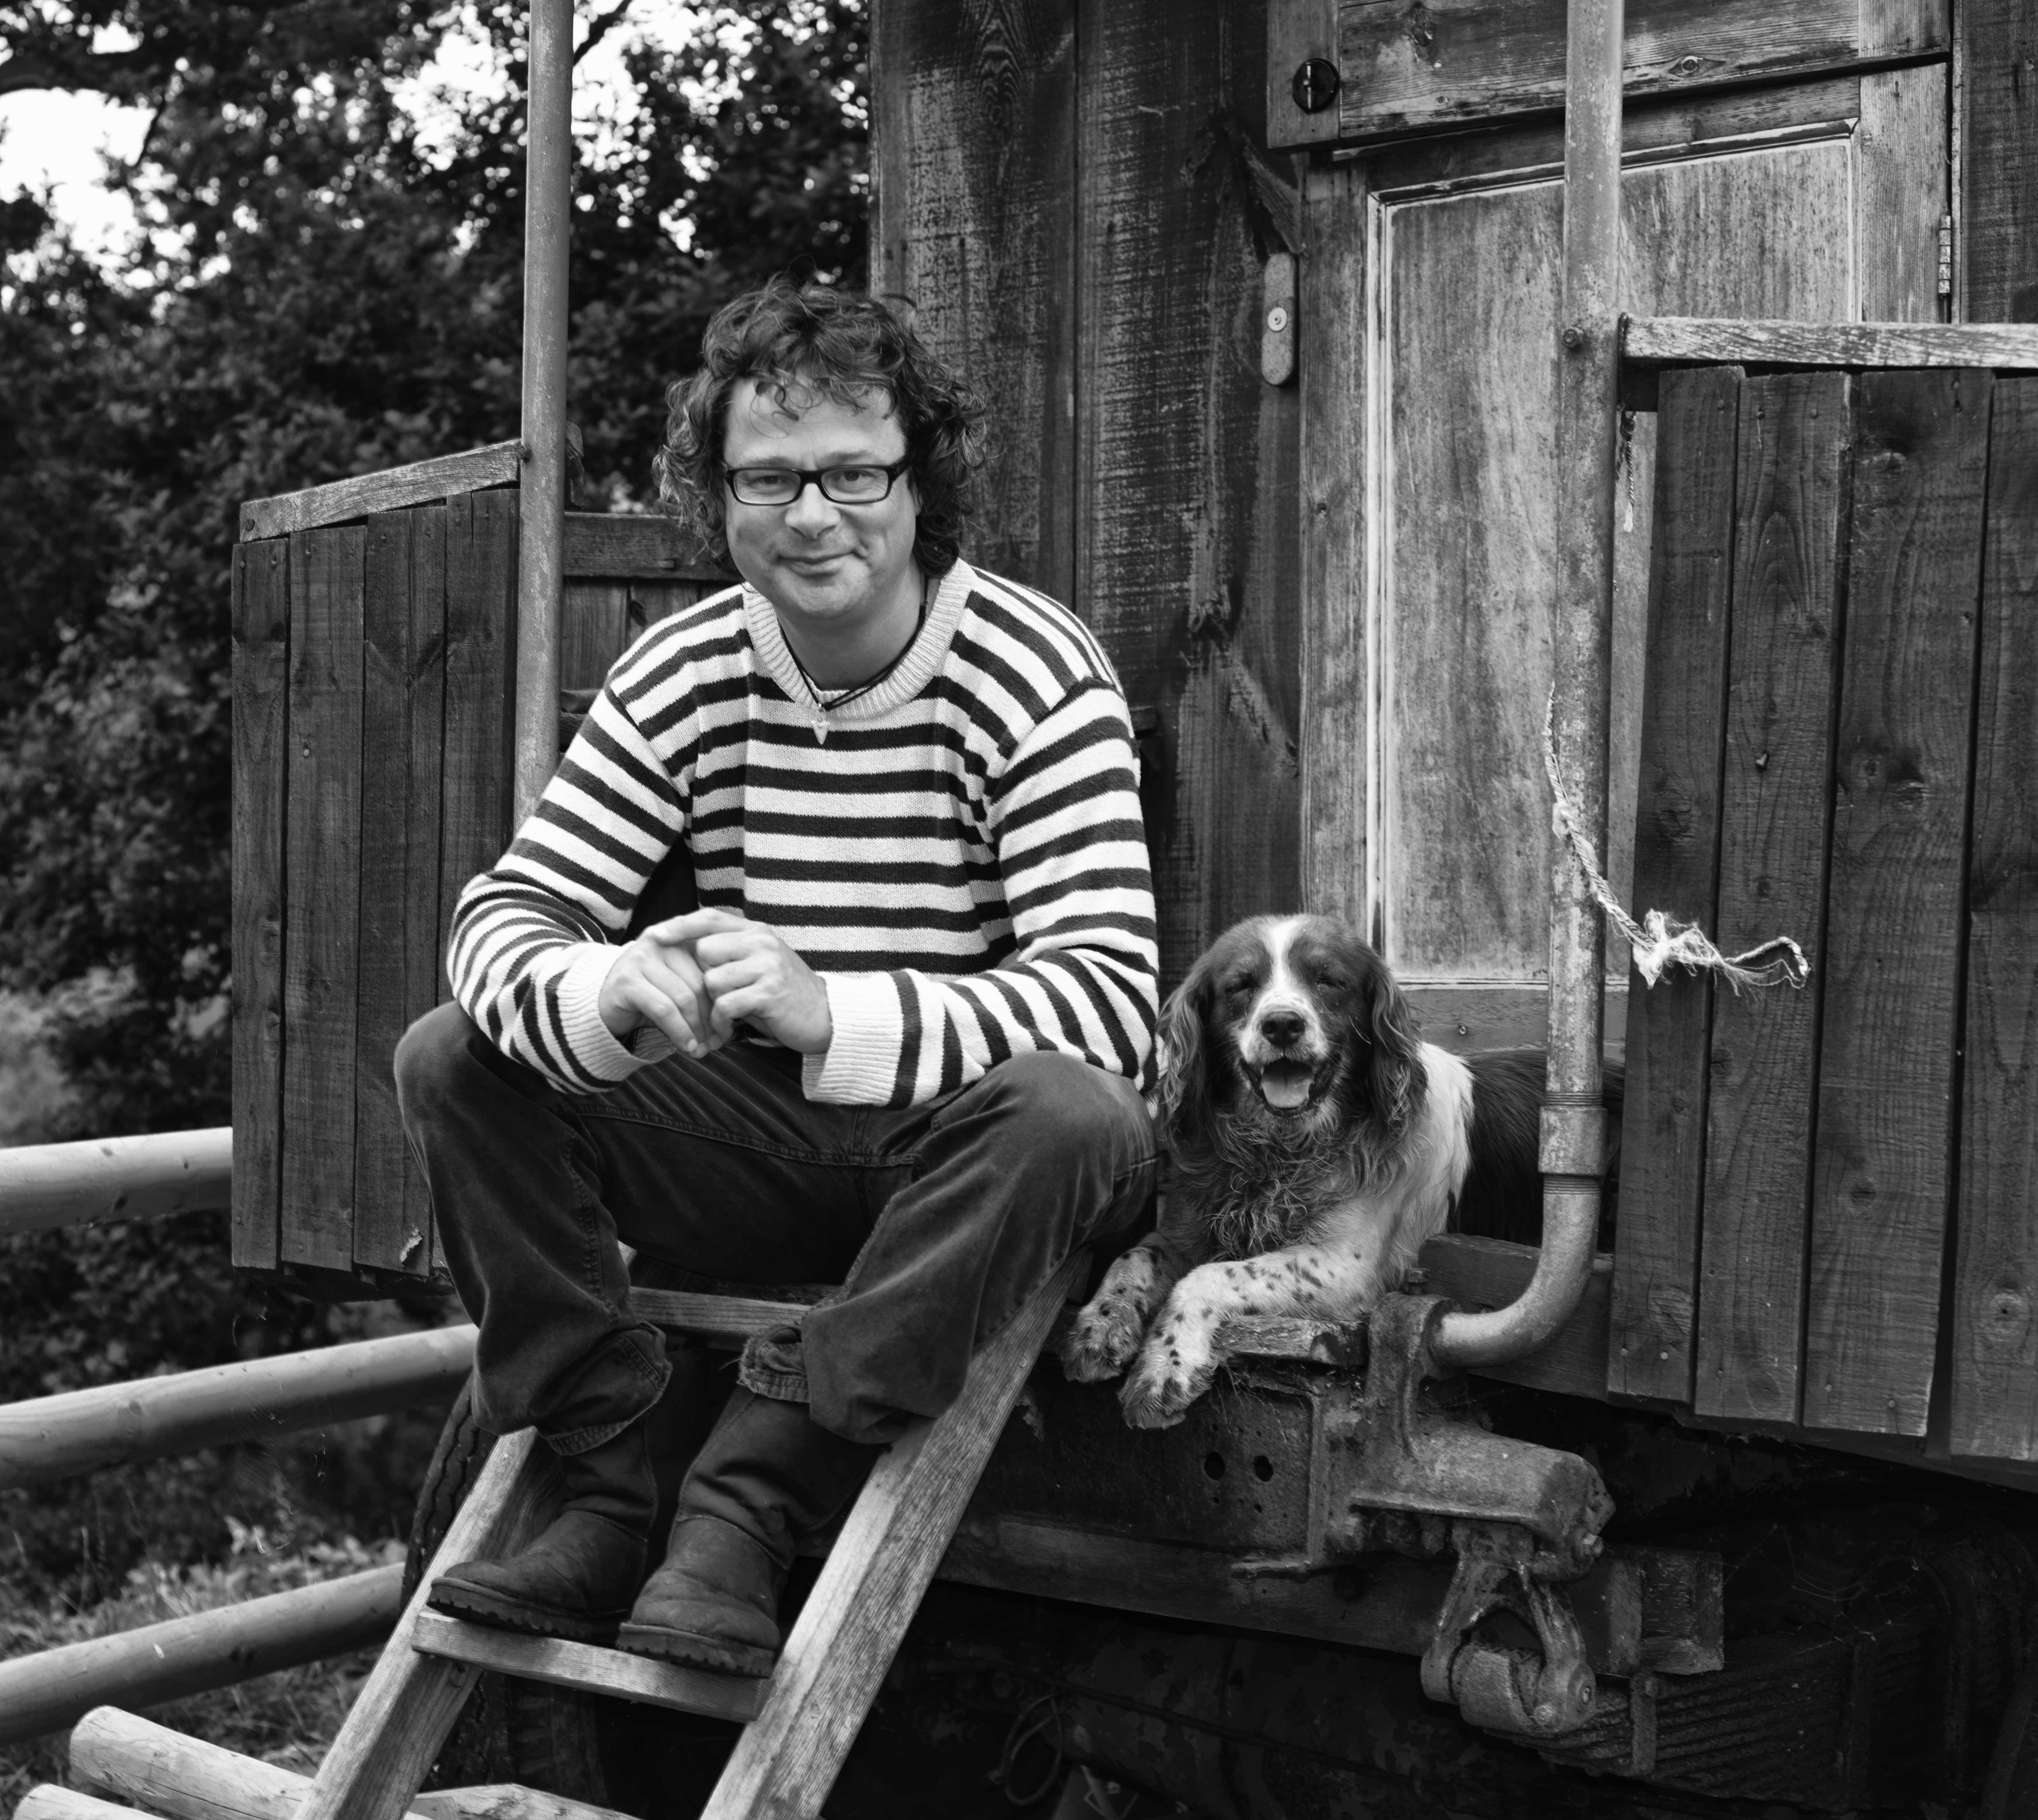 River Cottage Kitchen: Hugh Fearnley-Whittingstall